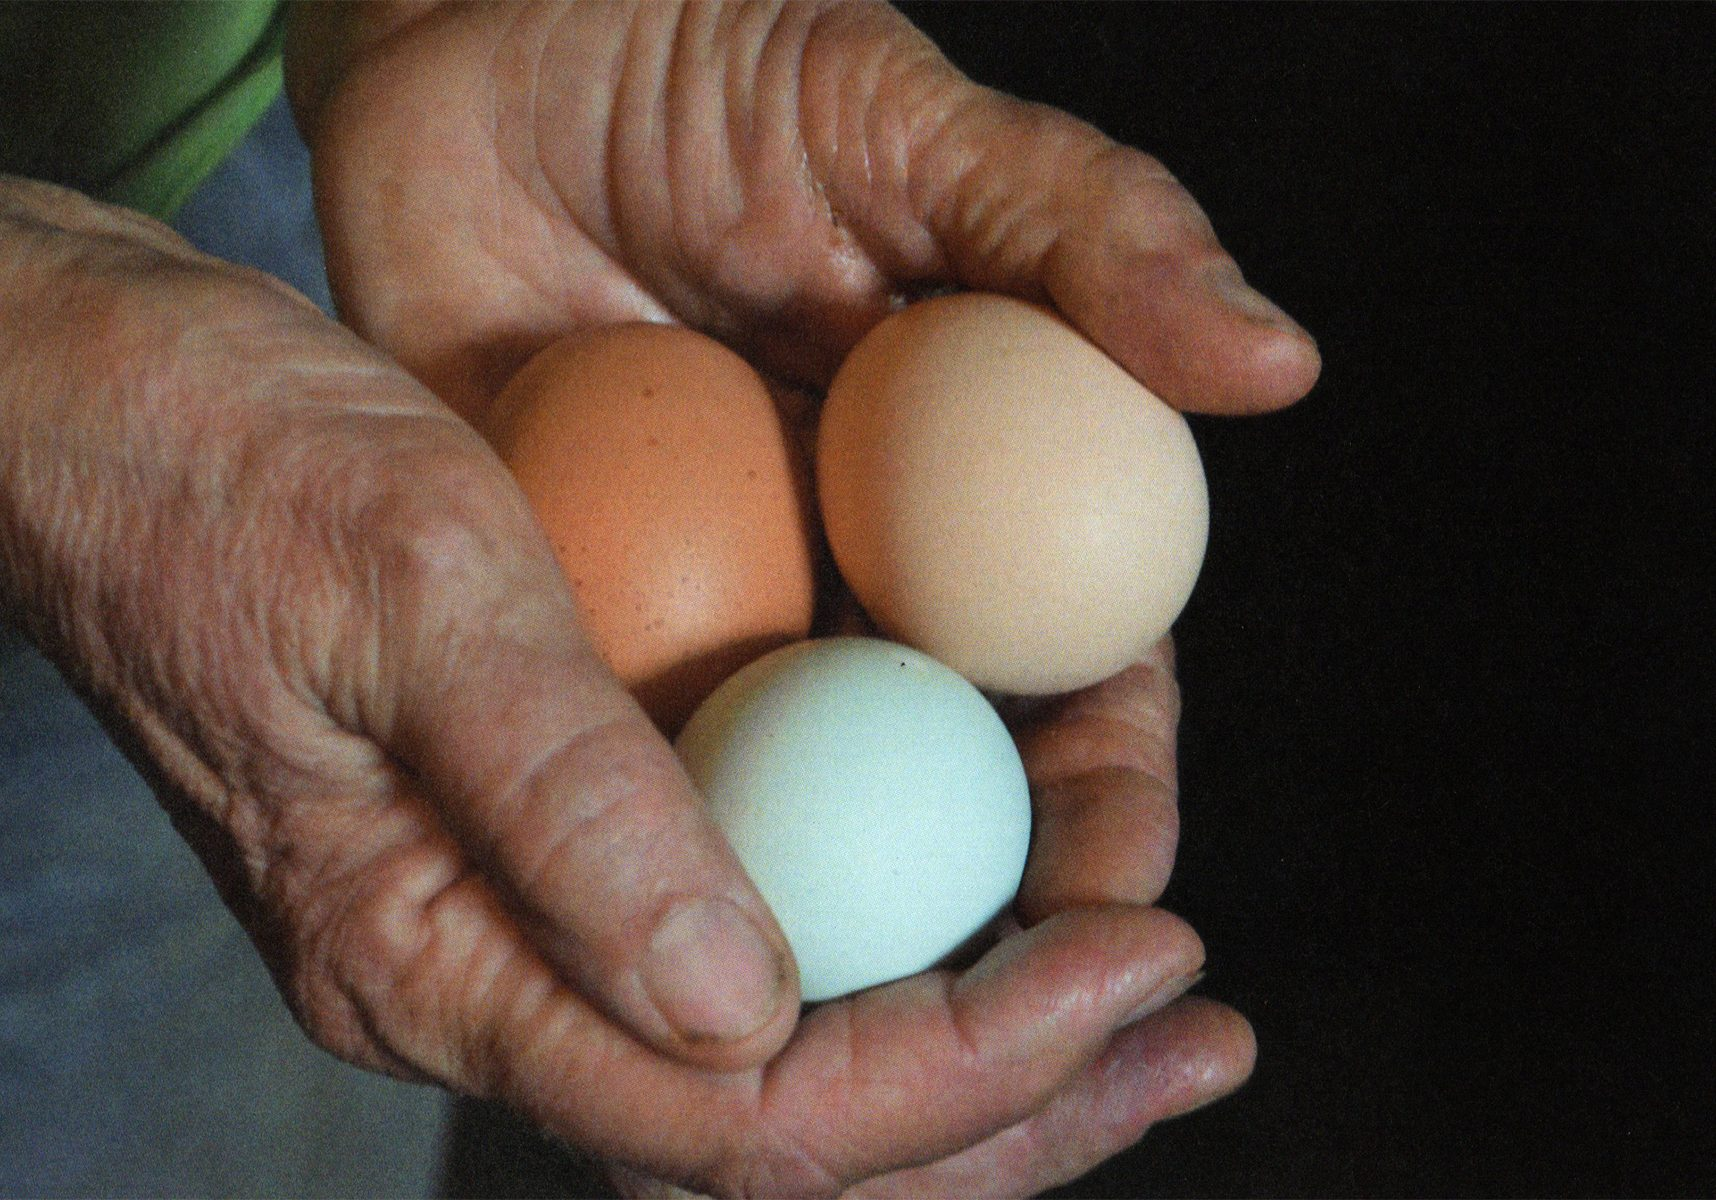 photograph of weathered hands holding three eggs, a brown egg, tan egg, and blue egg